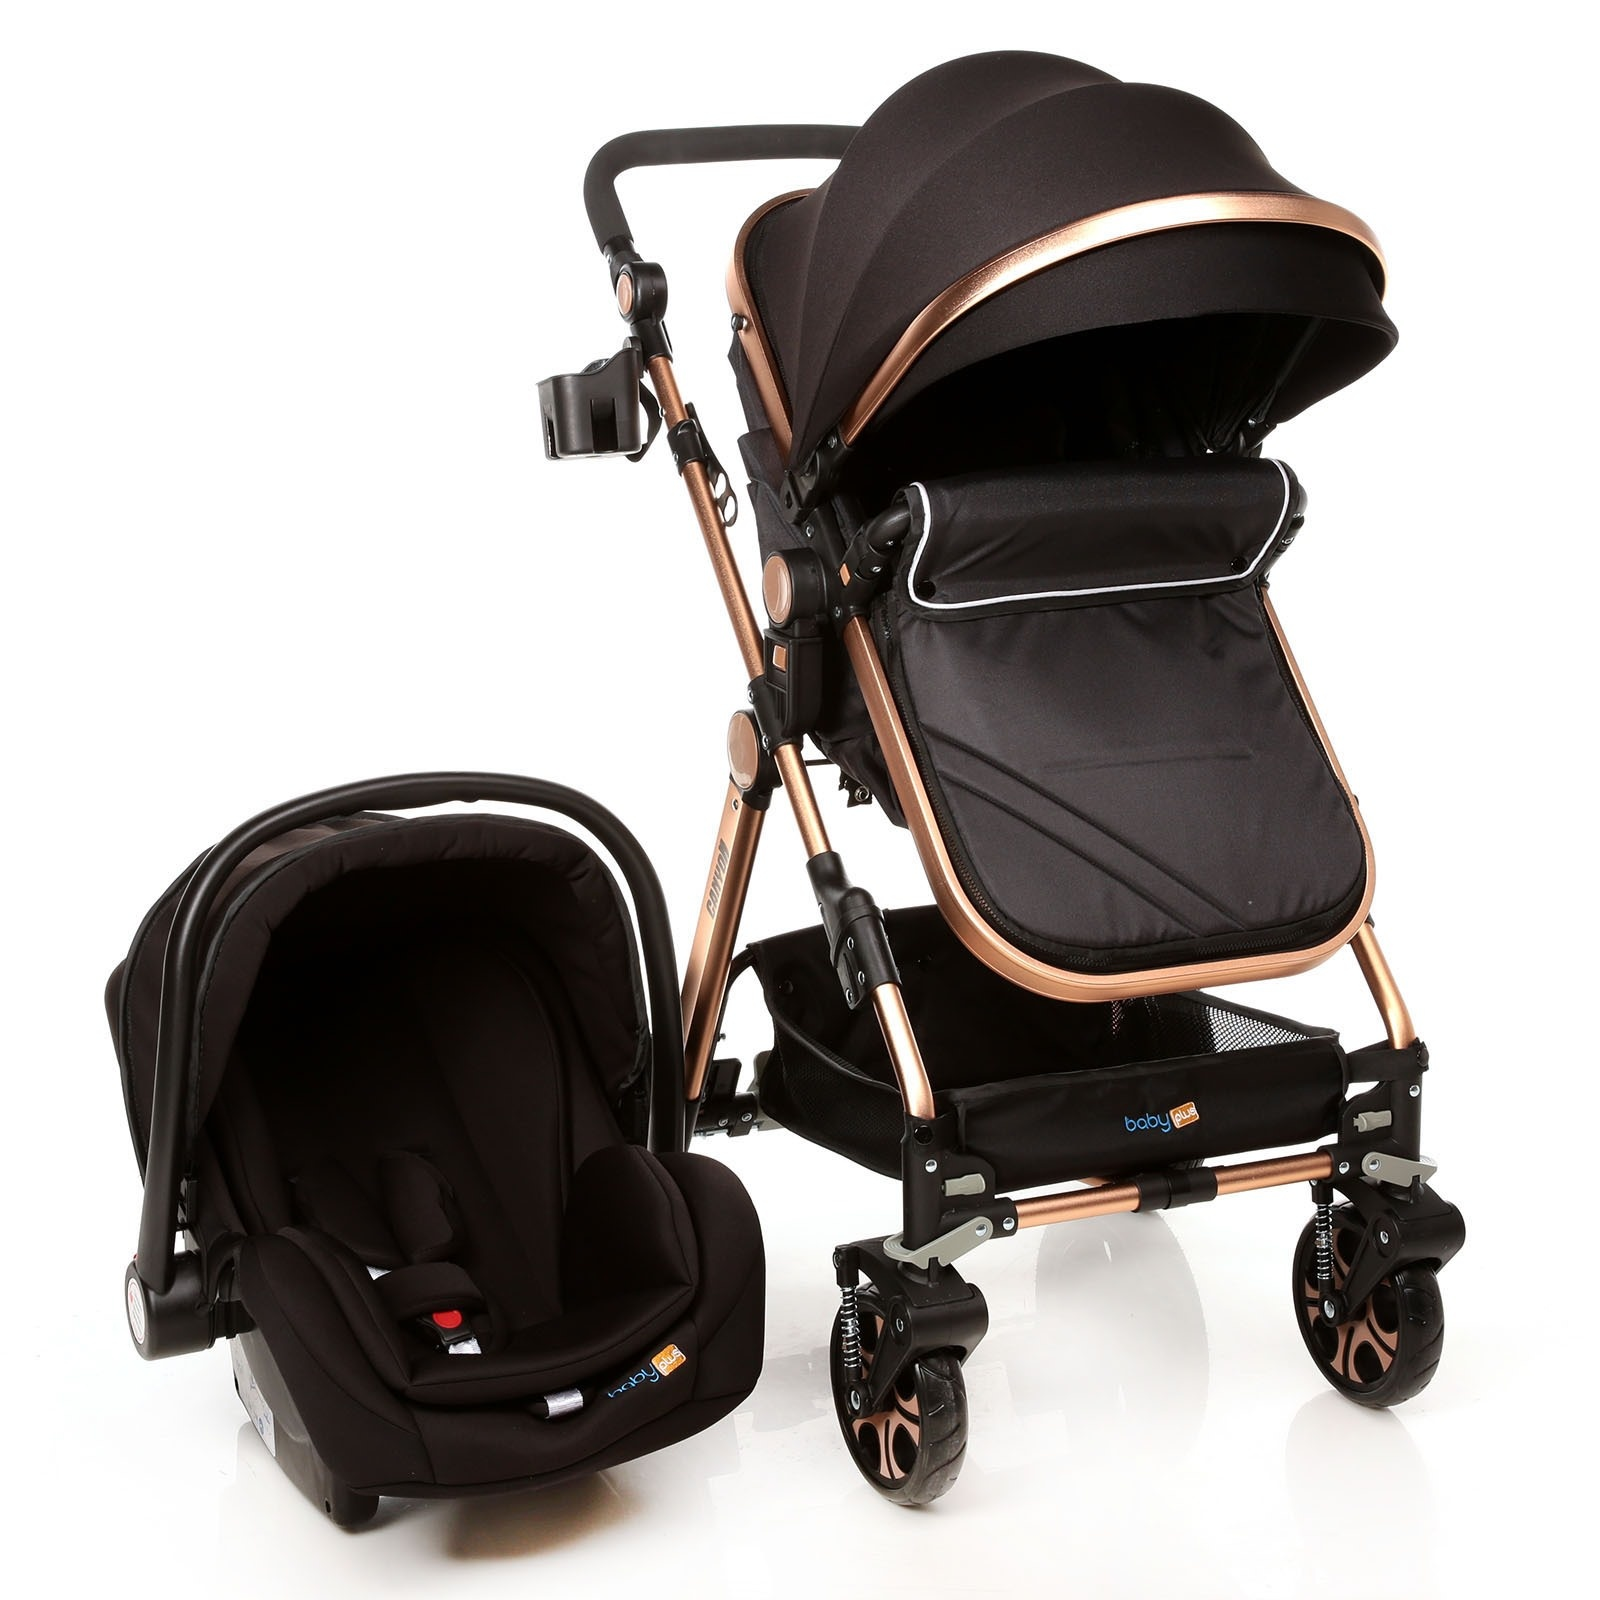 Baby Plus Canyon Travel Sistem Bebek Arabasi V2